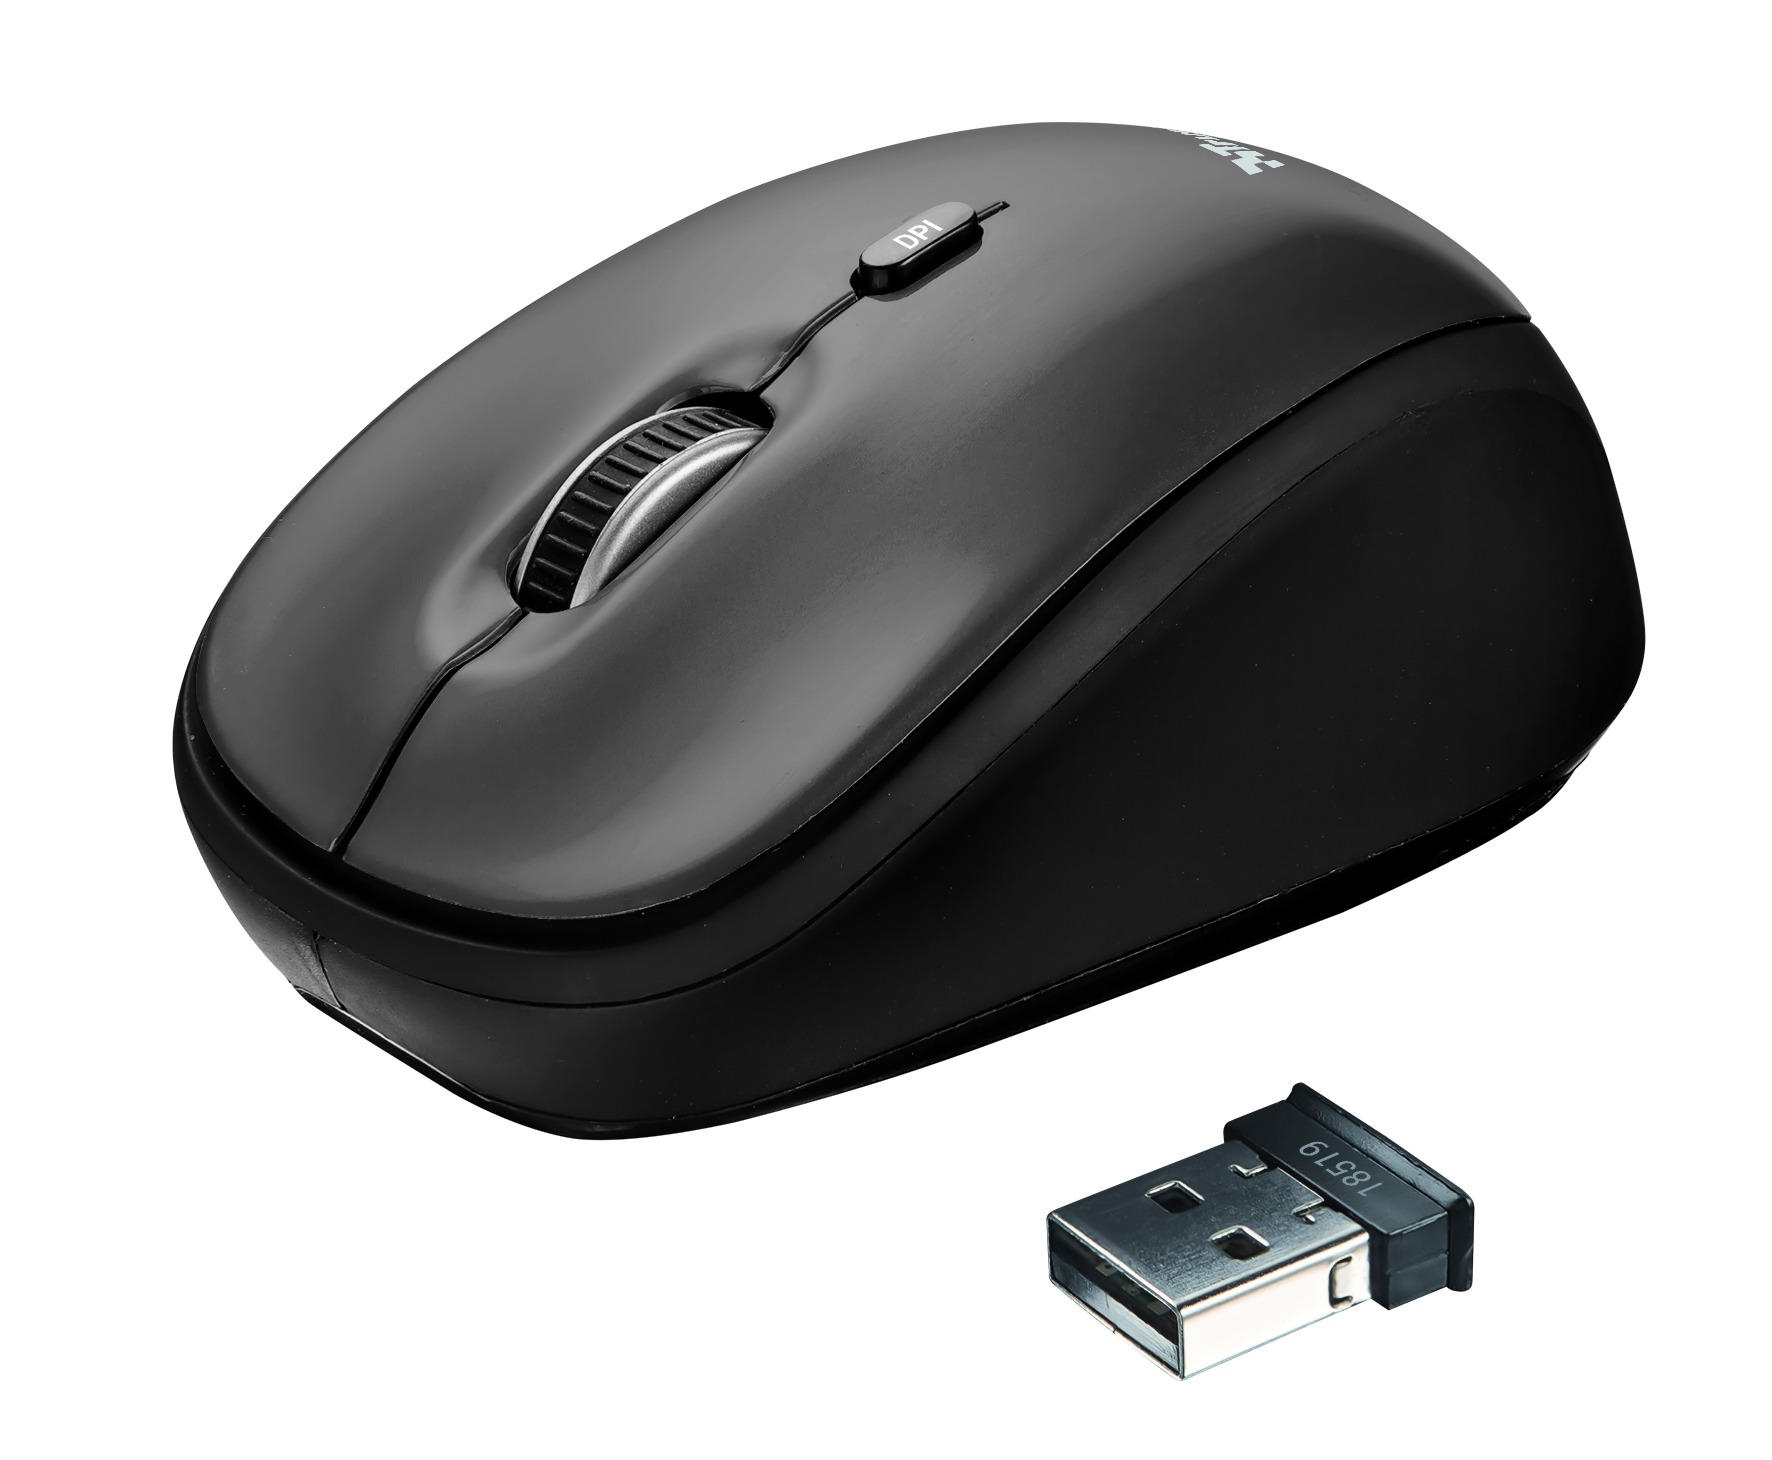 Korting Trust Yvi Wireless Mini Mouse muis